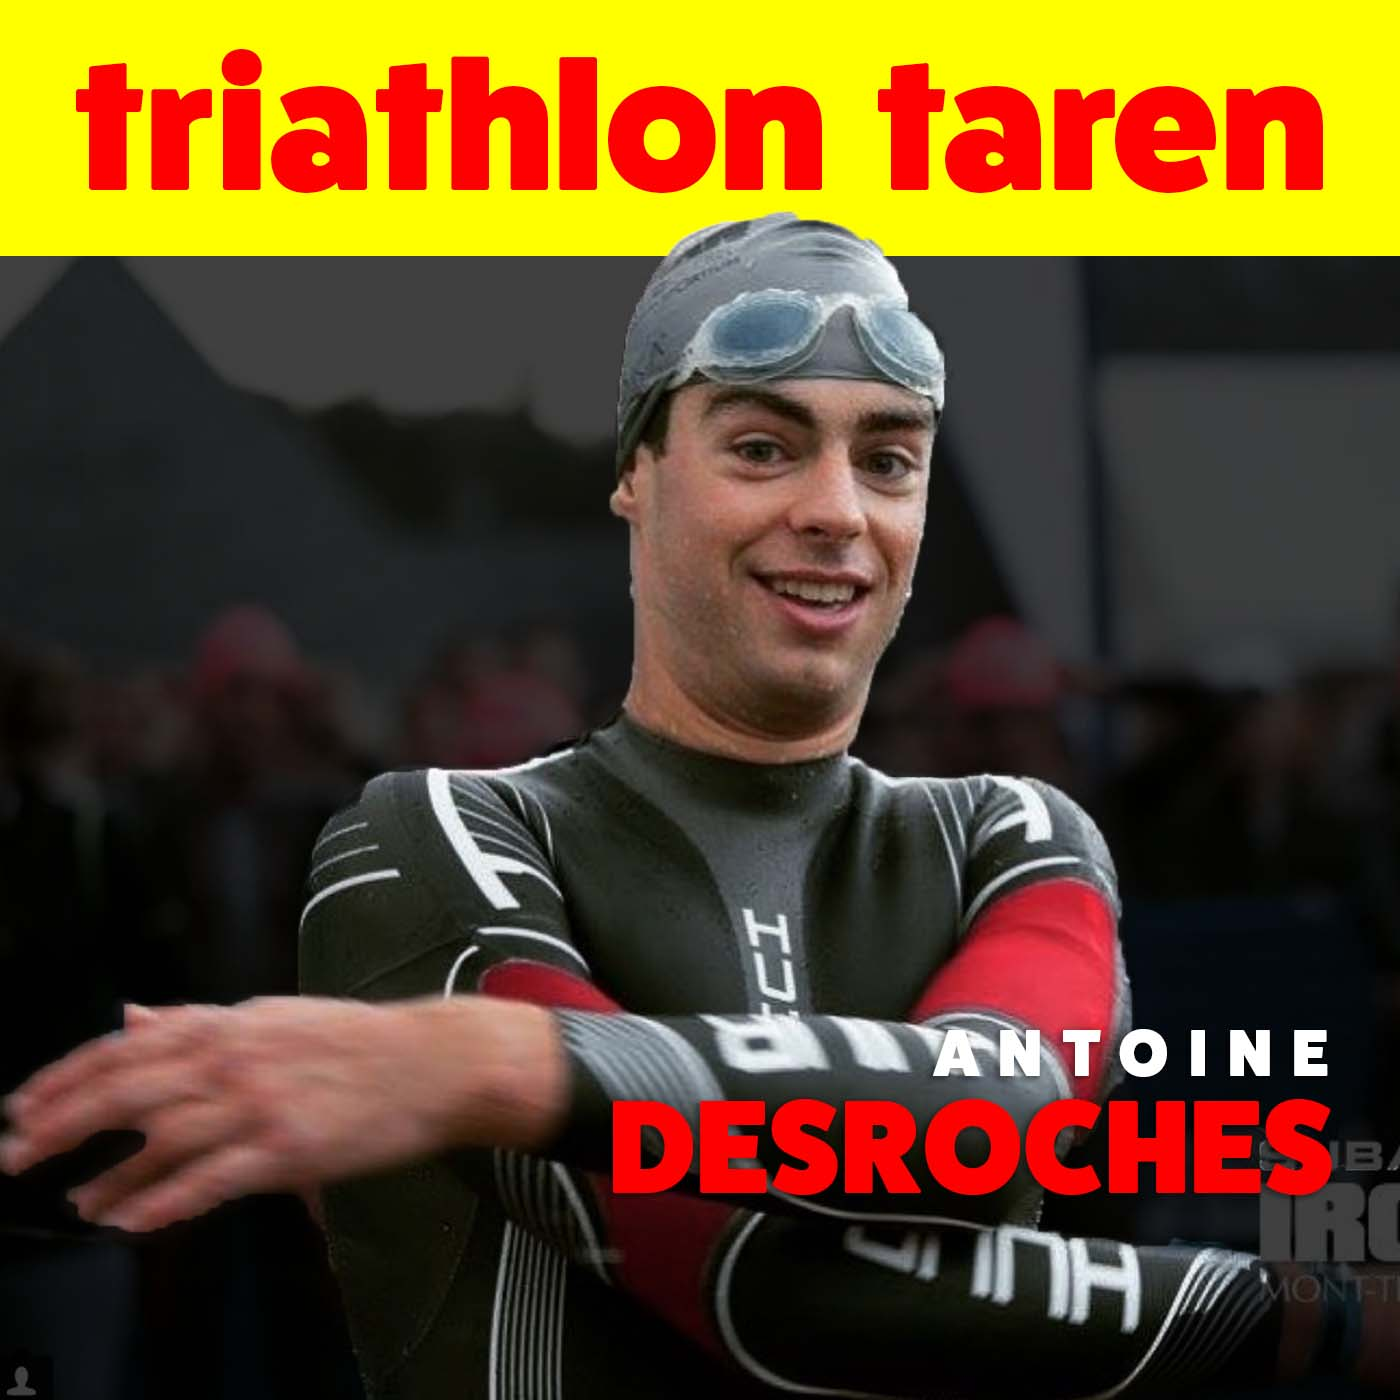 Antoine J Desroches Talks About the Unknown Life of Most Pro Triathletes